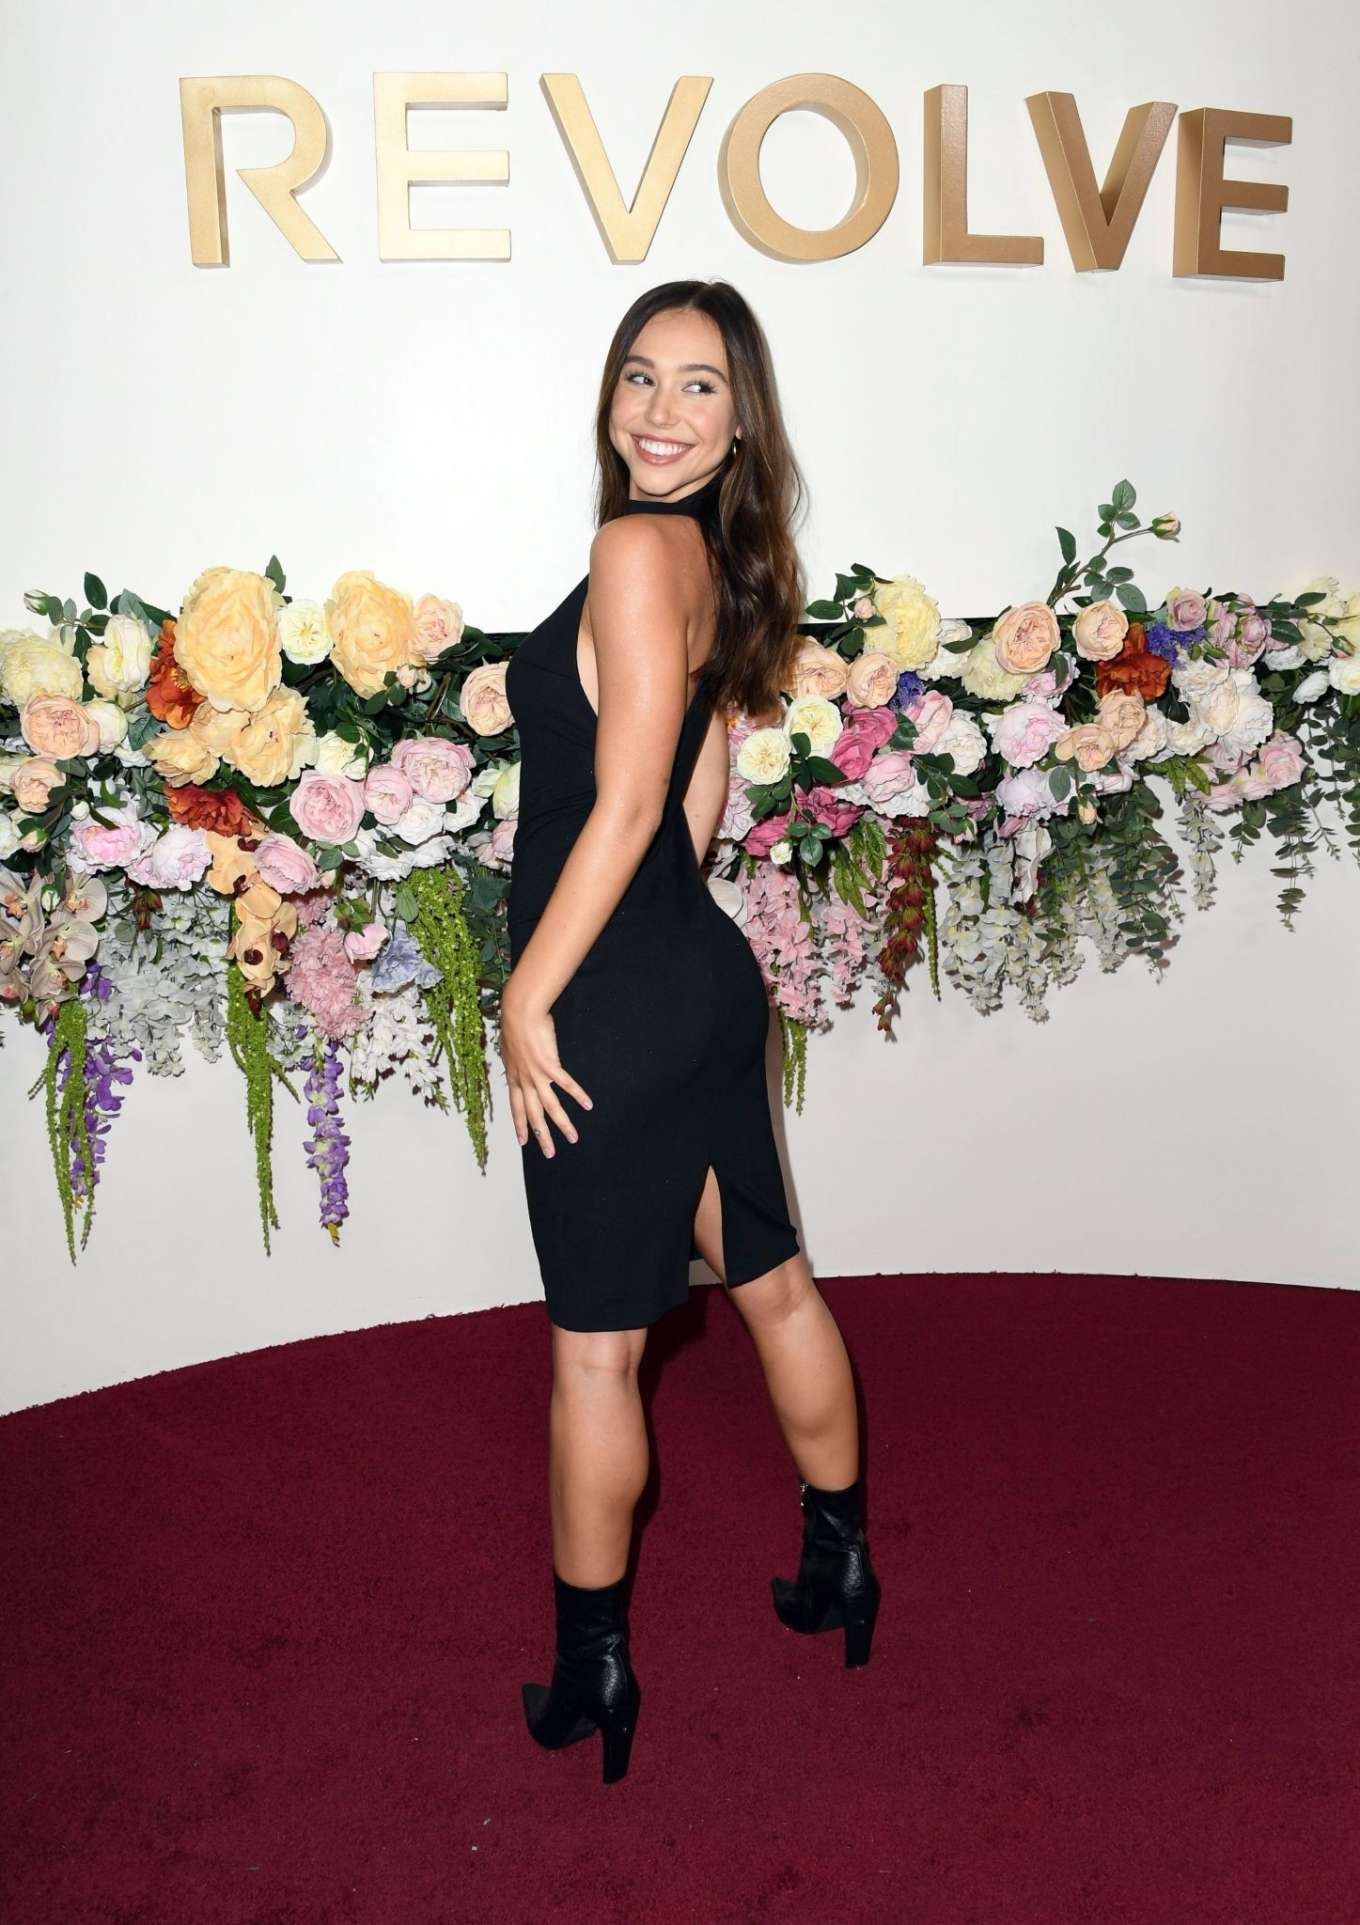 Alexis Ren - 2019 REVOLVE awards in West Hollywood